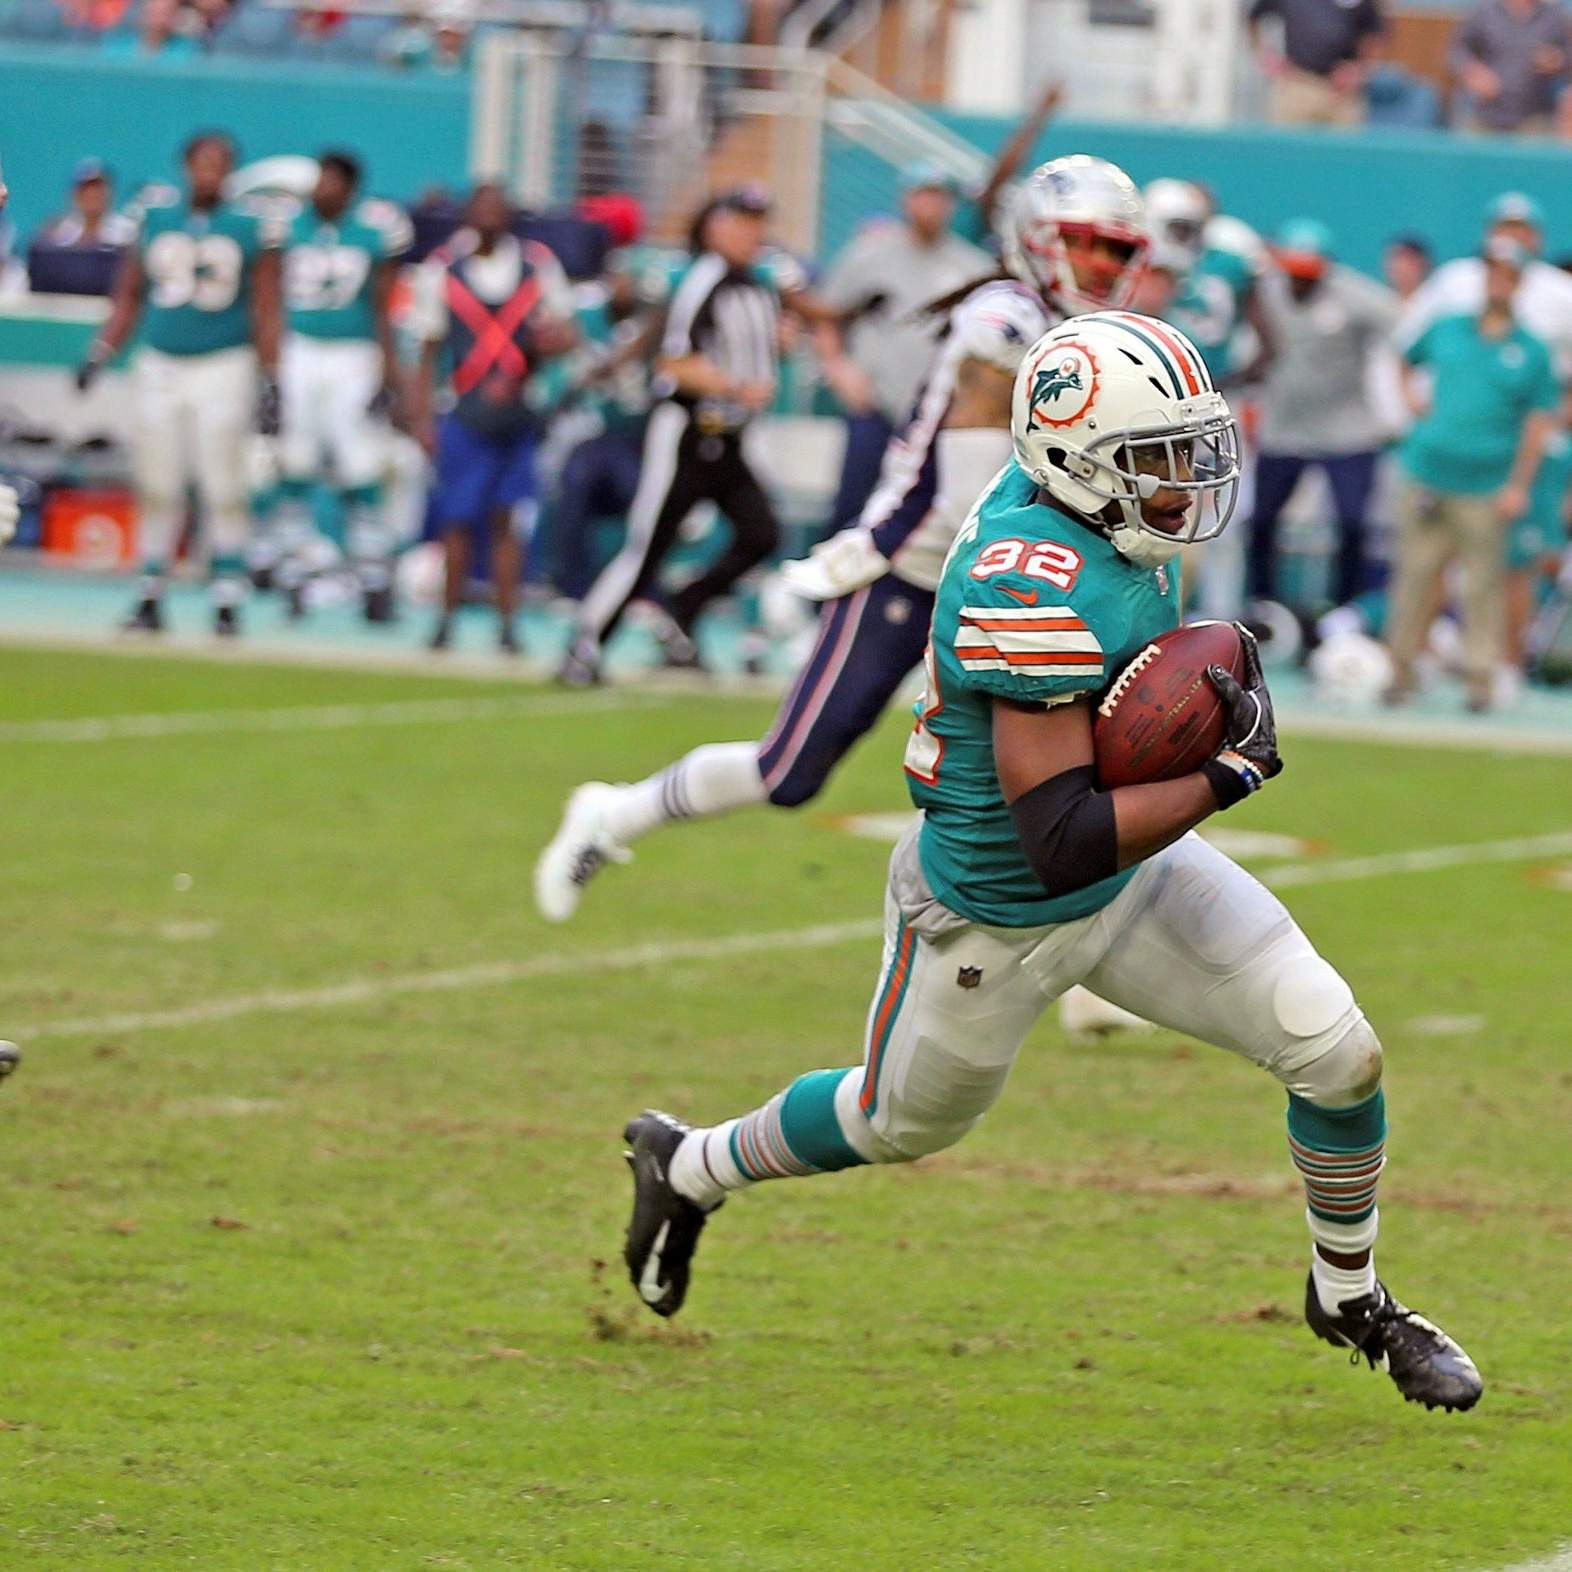 eadeb6ce1 Miami Dolphins running back Kenyan Drake runs for a touchdown during the  second half of Sunday's game against the New England Patriots in Miami  Gardens, ...